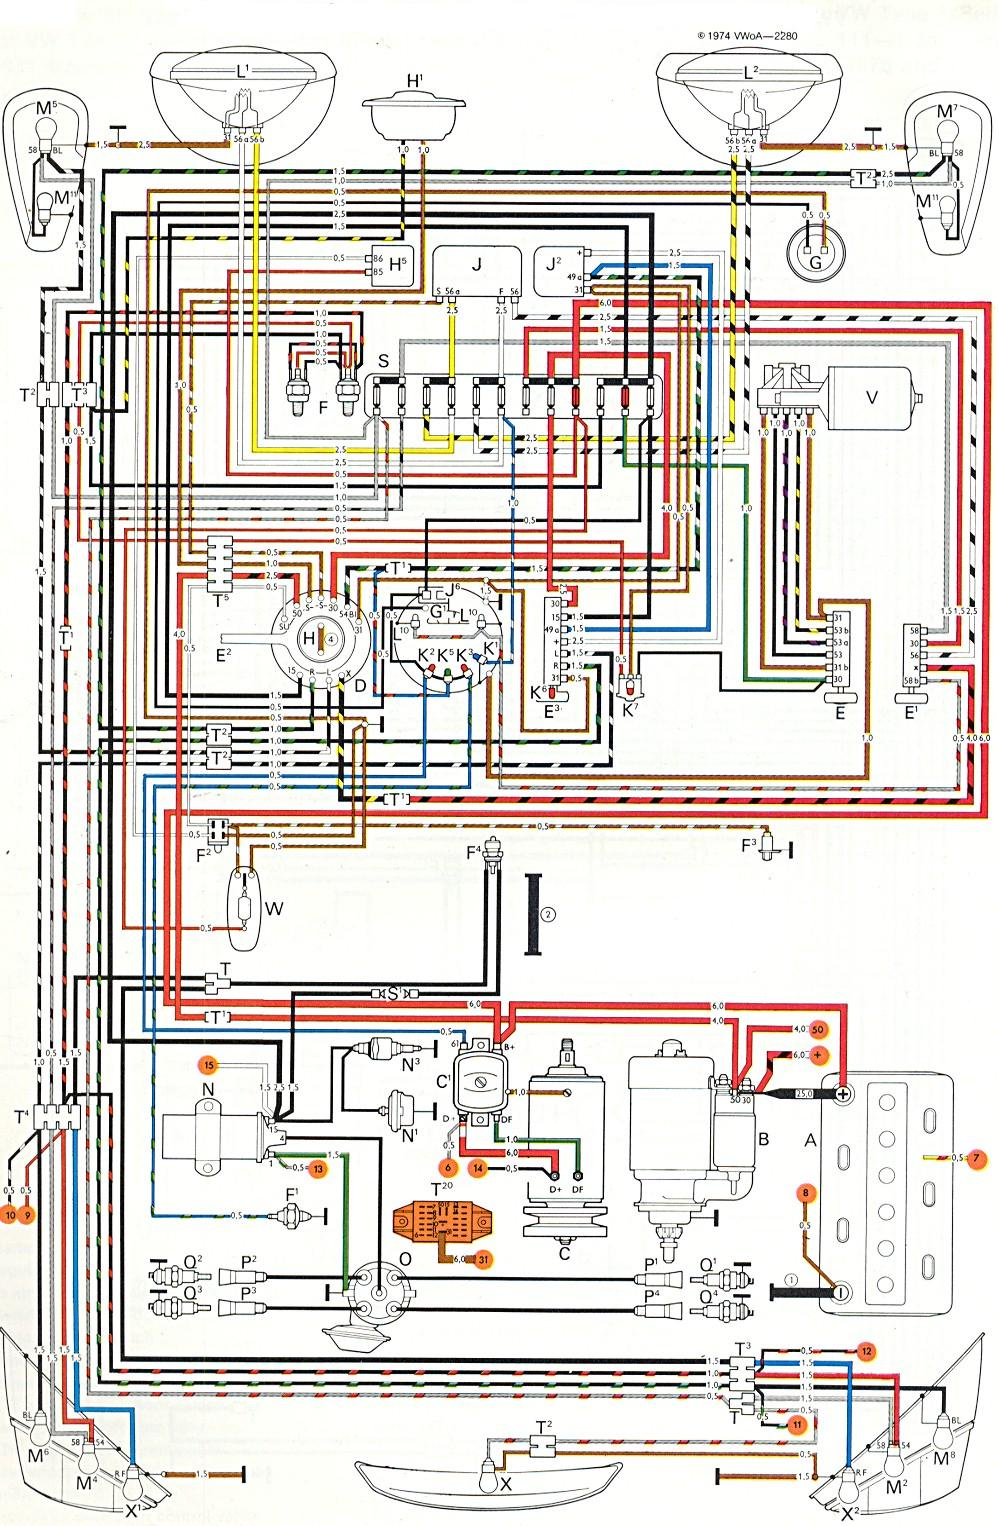 [SCHEMATICS_48ZD]  72 Vw Super Beetle Wiring Diagram - Sd Queen Washer Wiring Diagram for Wiring  Diagram Schematics | Beetle Wiring Diagram |  | Wiring Diagram Schematics